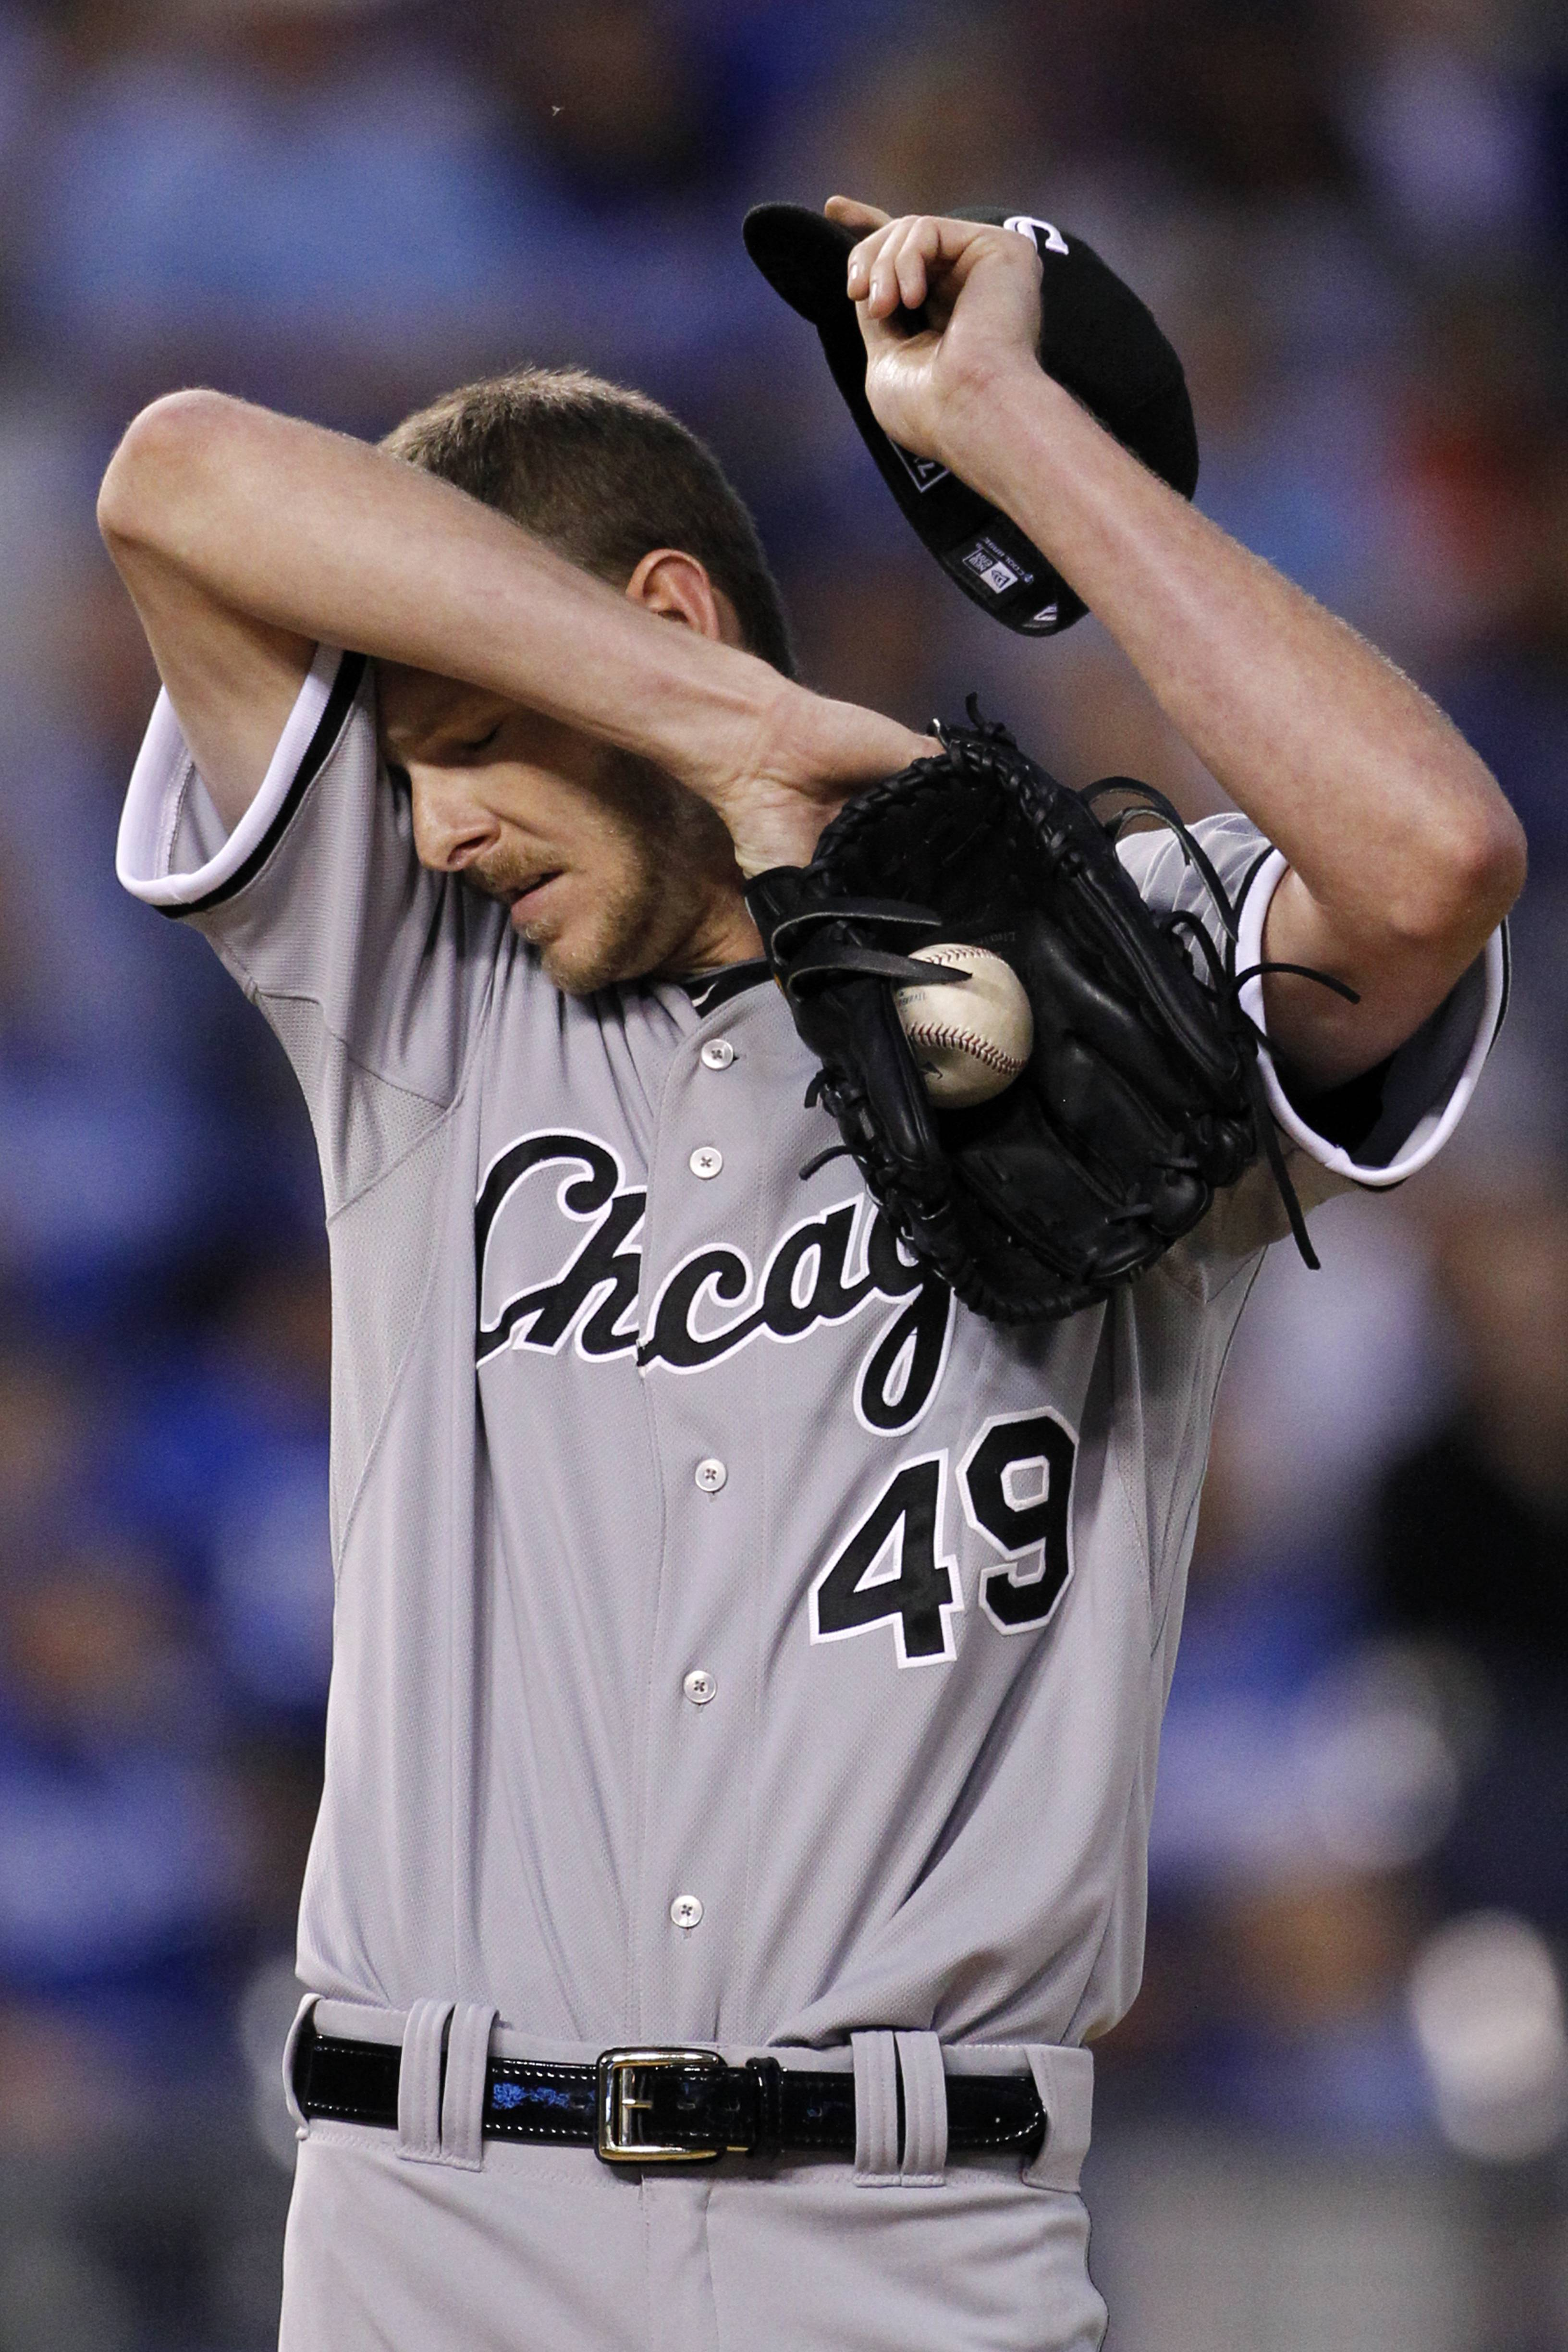 On Saturday, the White Sox announced Chris Sale suffered an avulsion fracture on the lateral side of his right foot in an accident at his home the day before.The Sox also announced Sale is expected to be sidelined for three weeks before he can resume baseball activities.